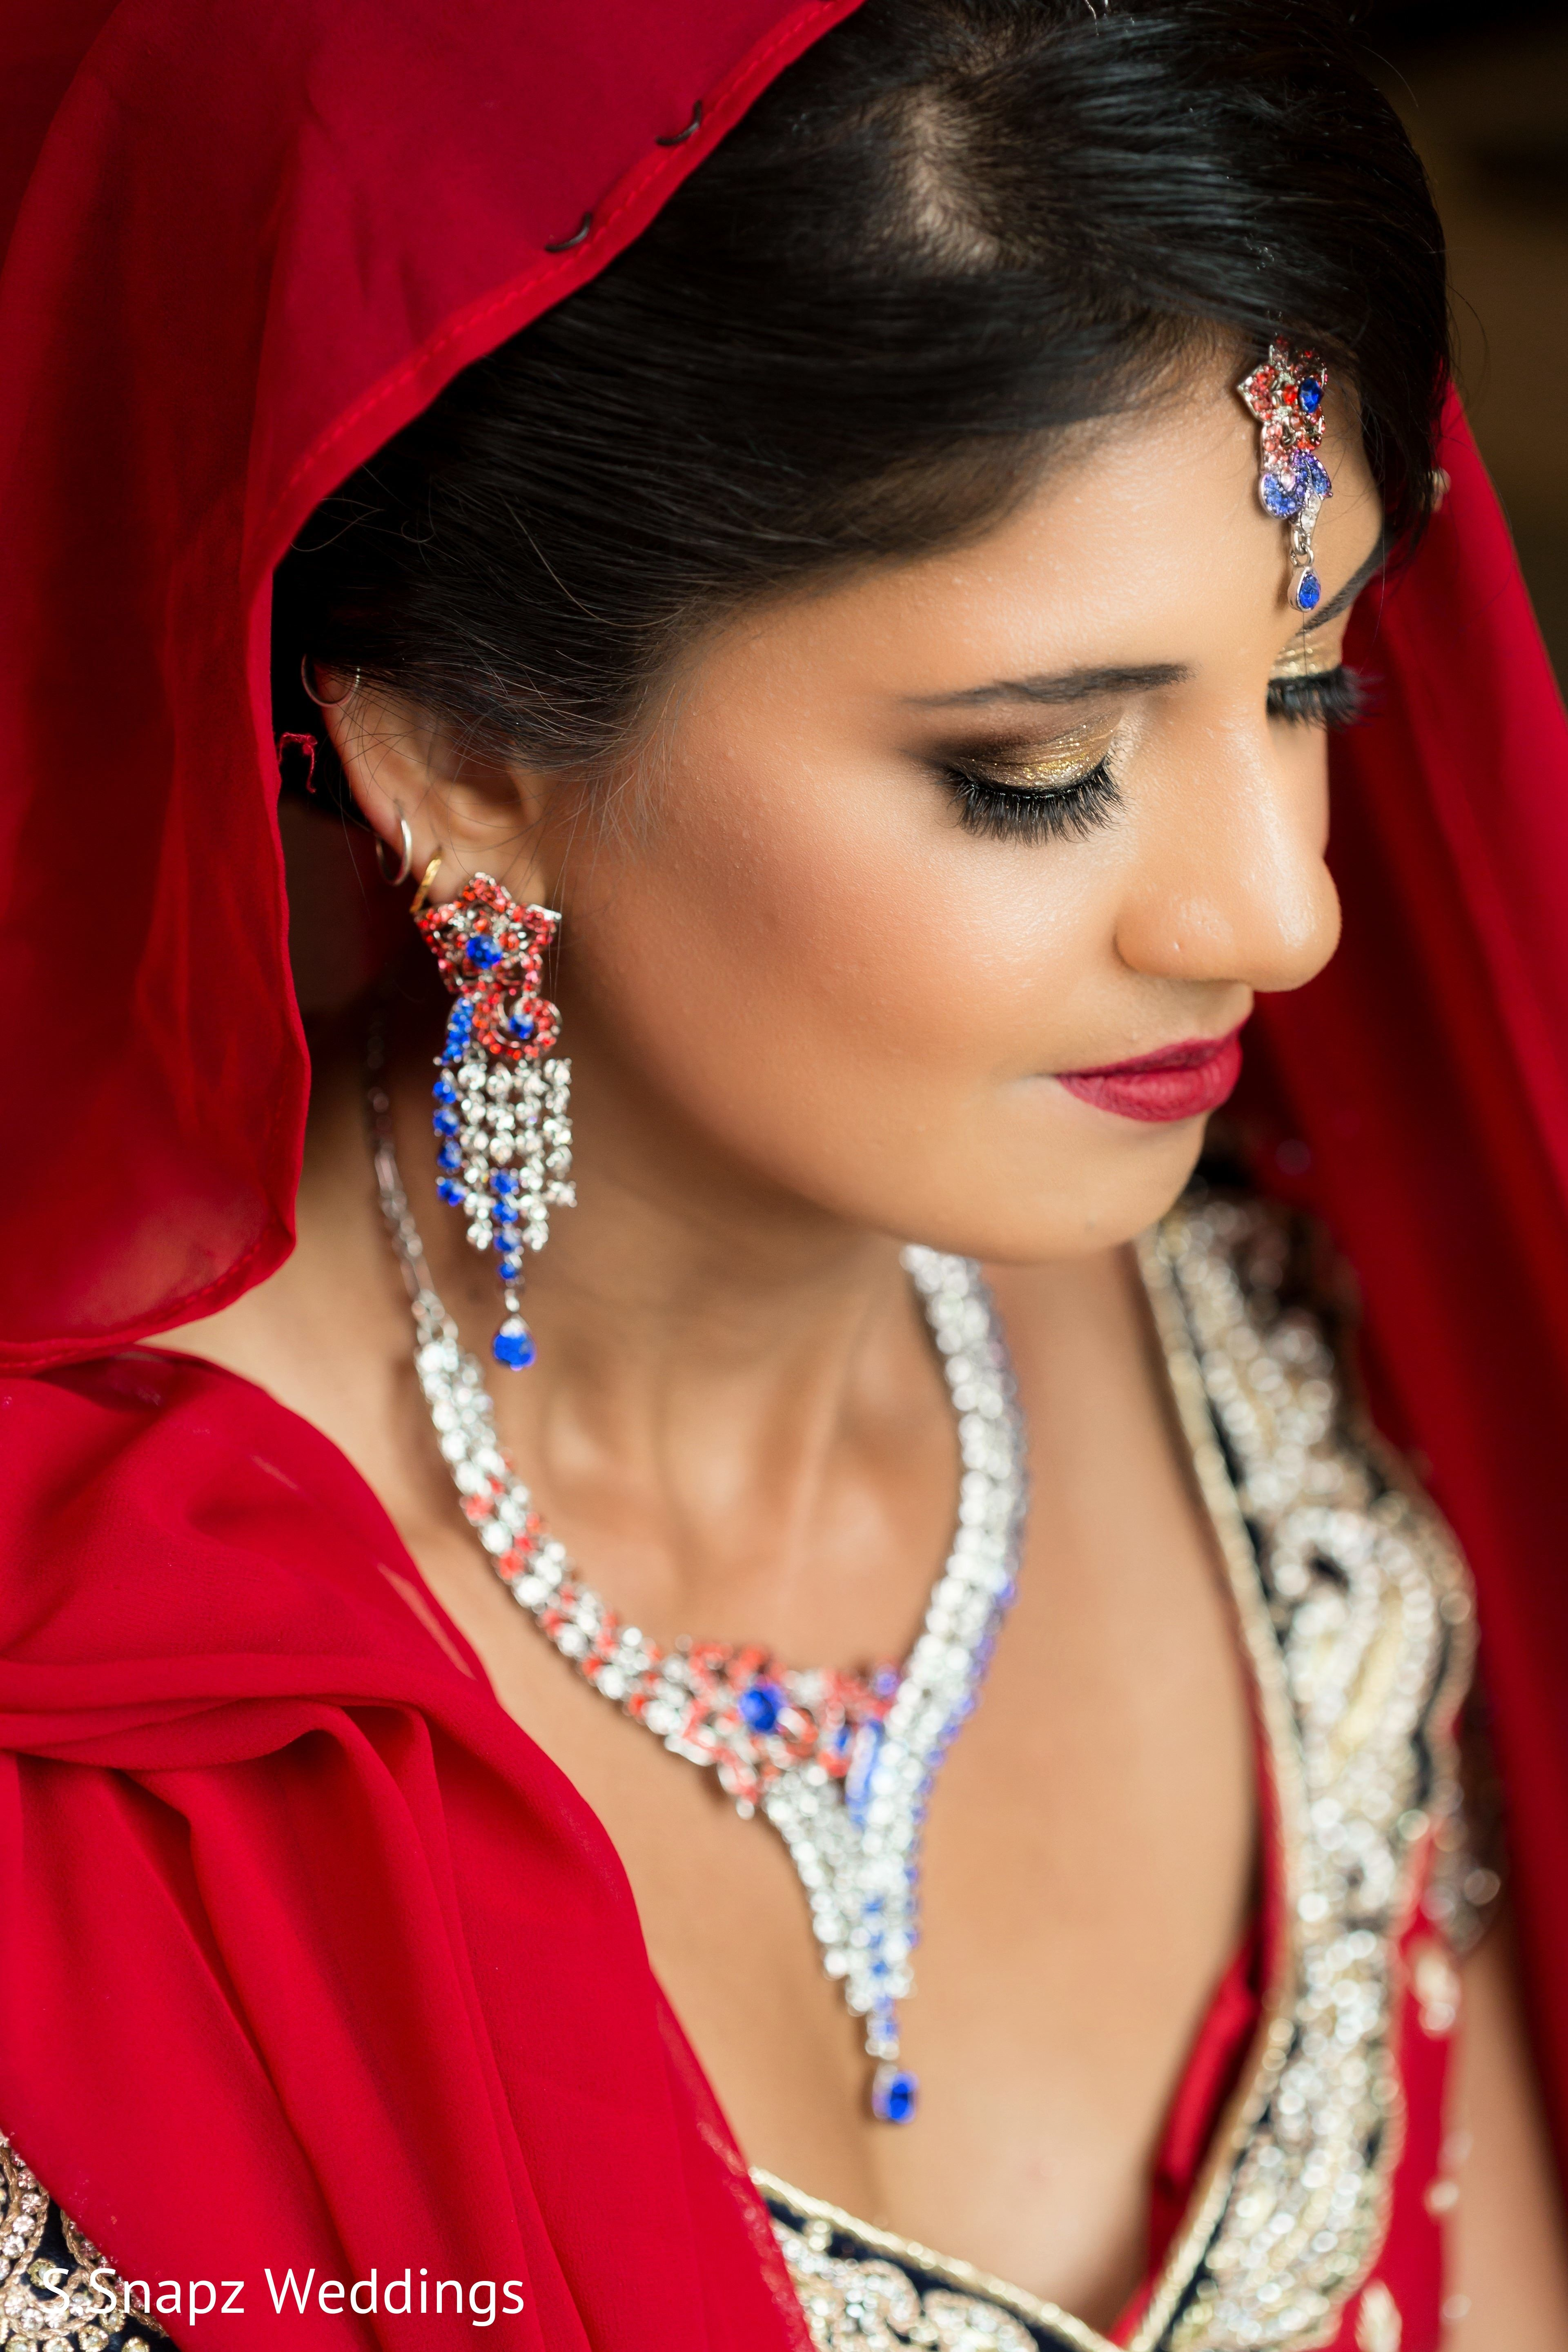 indian bridal hair and makeup artist based in new york city